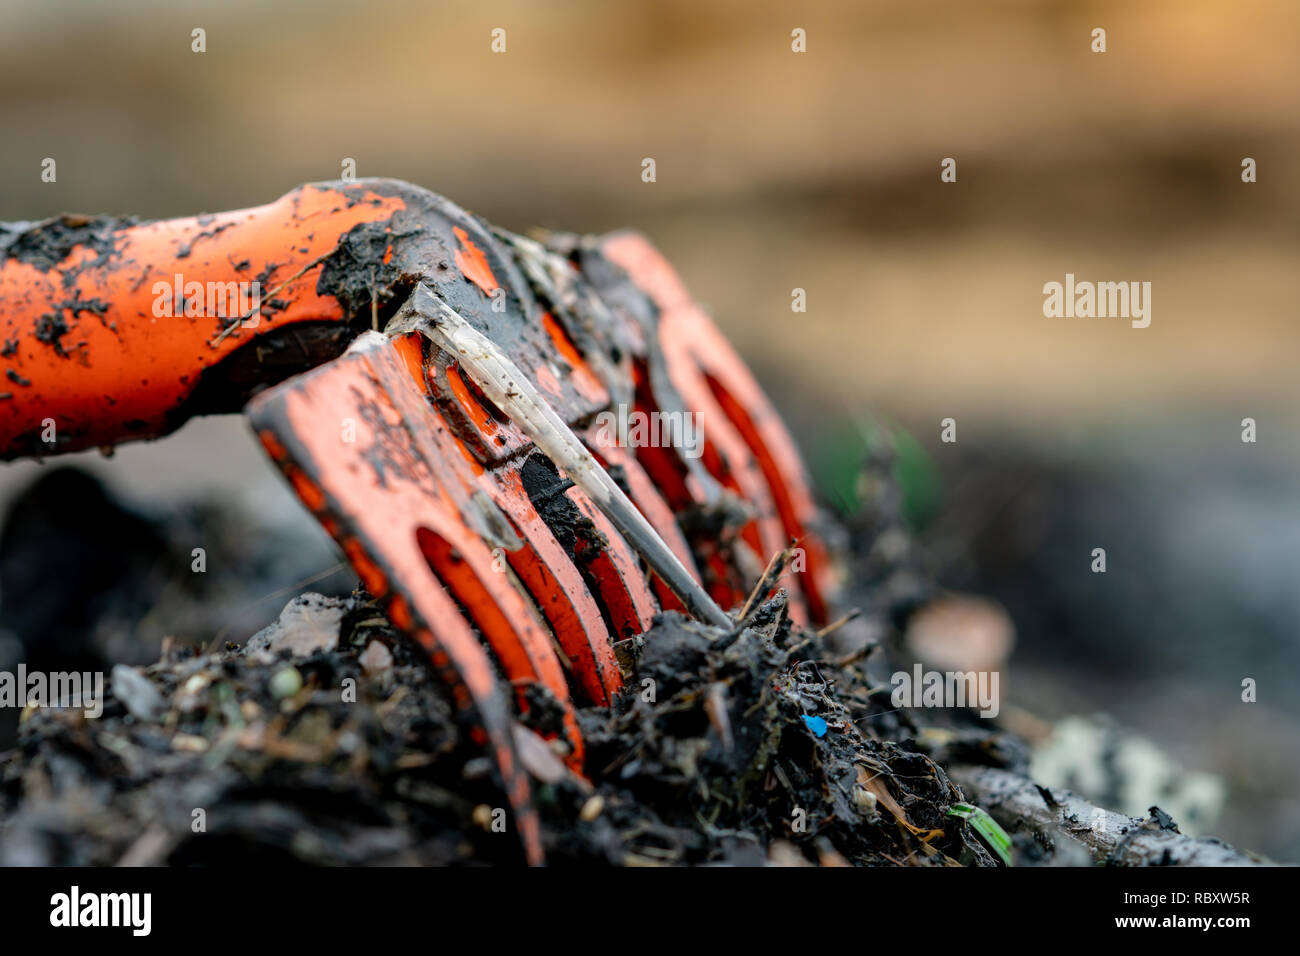 Closeup orange rake on pile of dirty plastic waste on blurred background. Beach environmental pollution concept Clean up rubbish on beach. Ocean - Stock Image